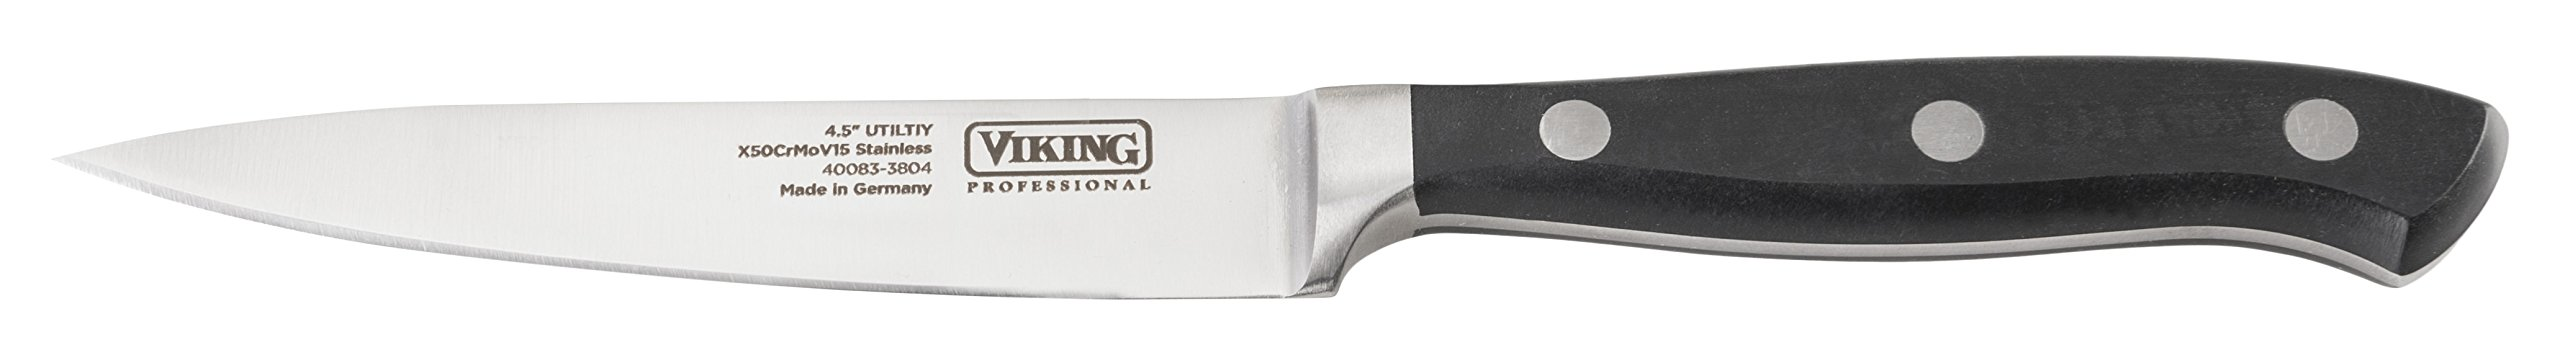 Viking Professional Cutlery Utility Knife, 4.5 Inch by Viking Culinary